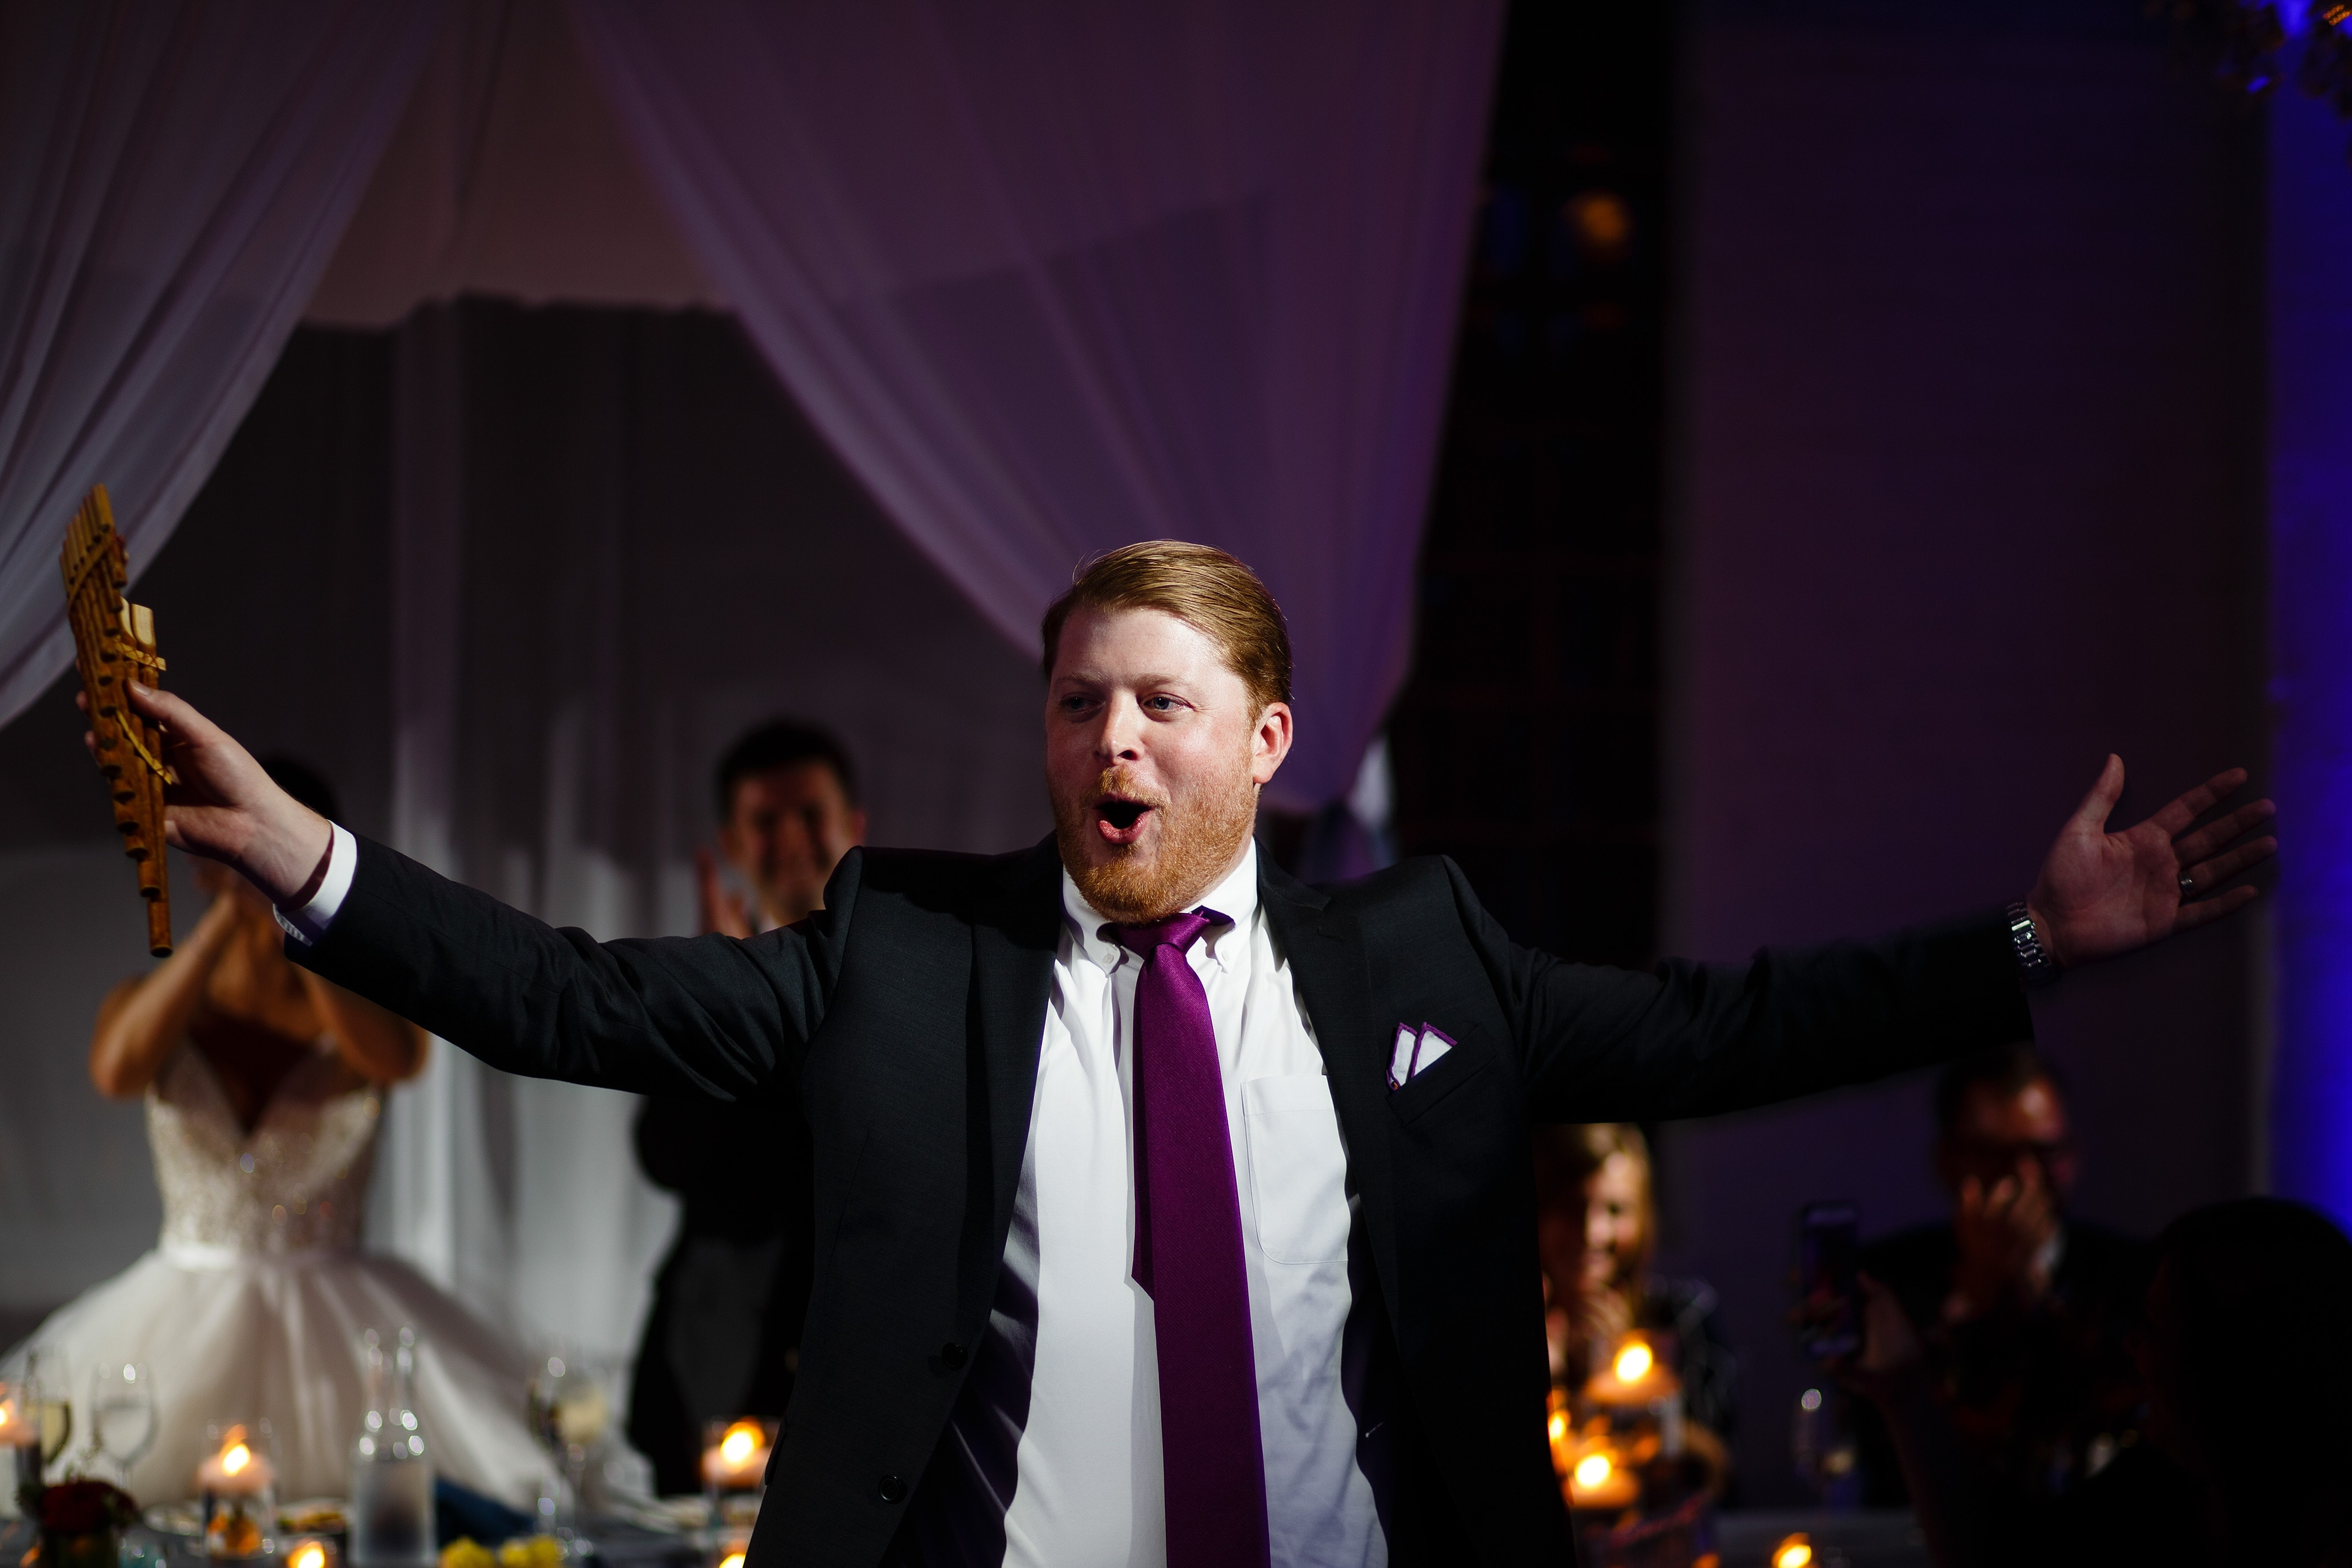 A guest cheers during a toast